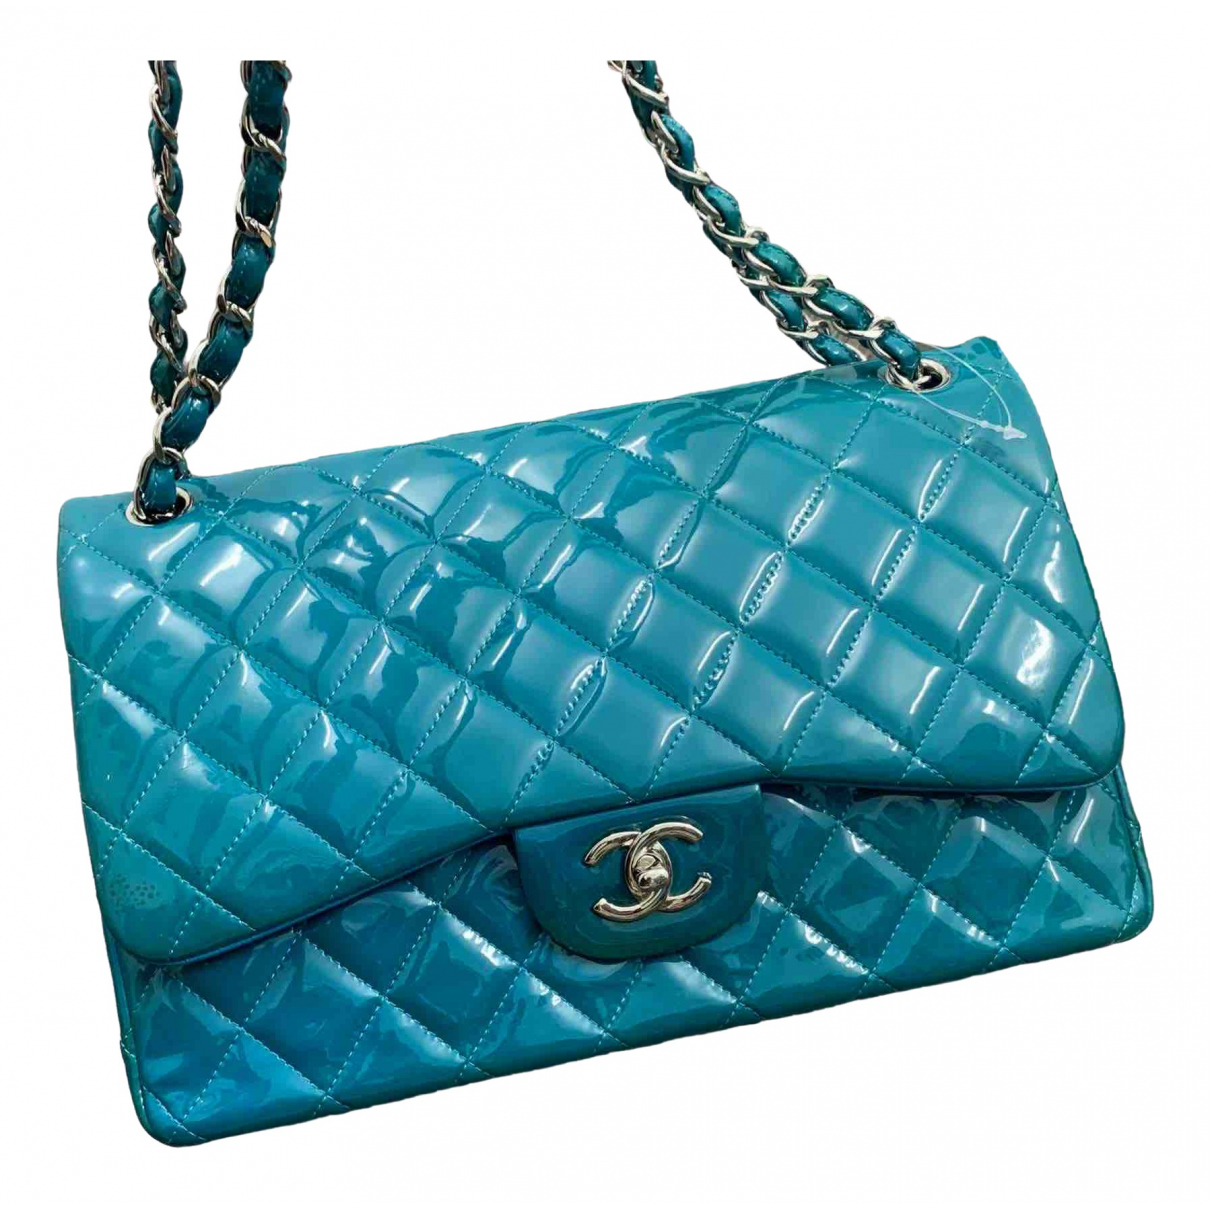 Chanel Timeless/Classique Blue Patent leather handbag for Women \N